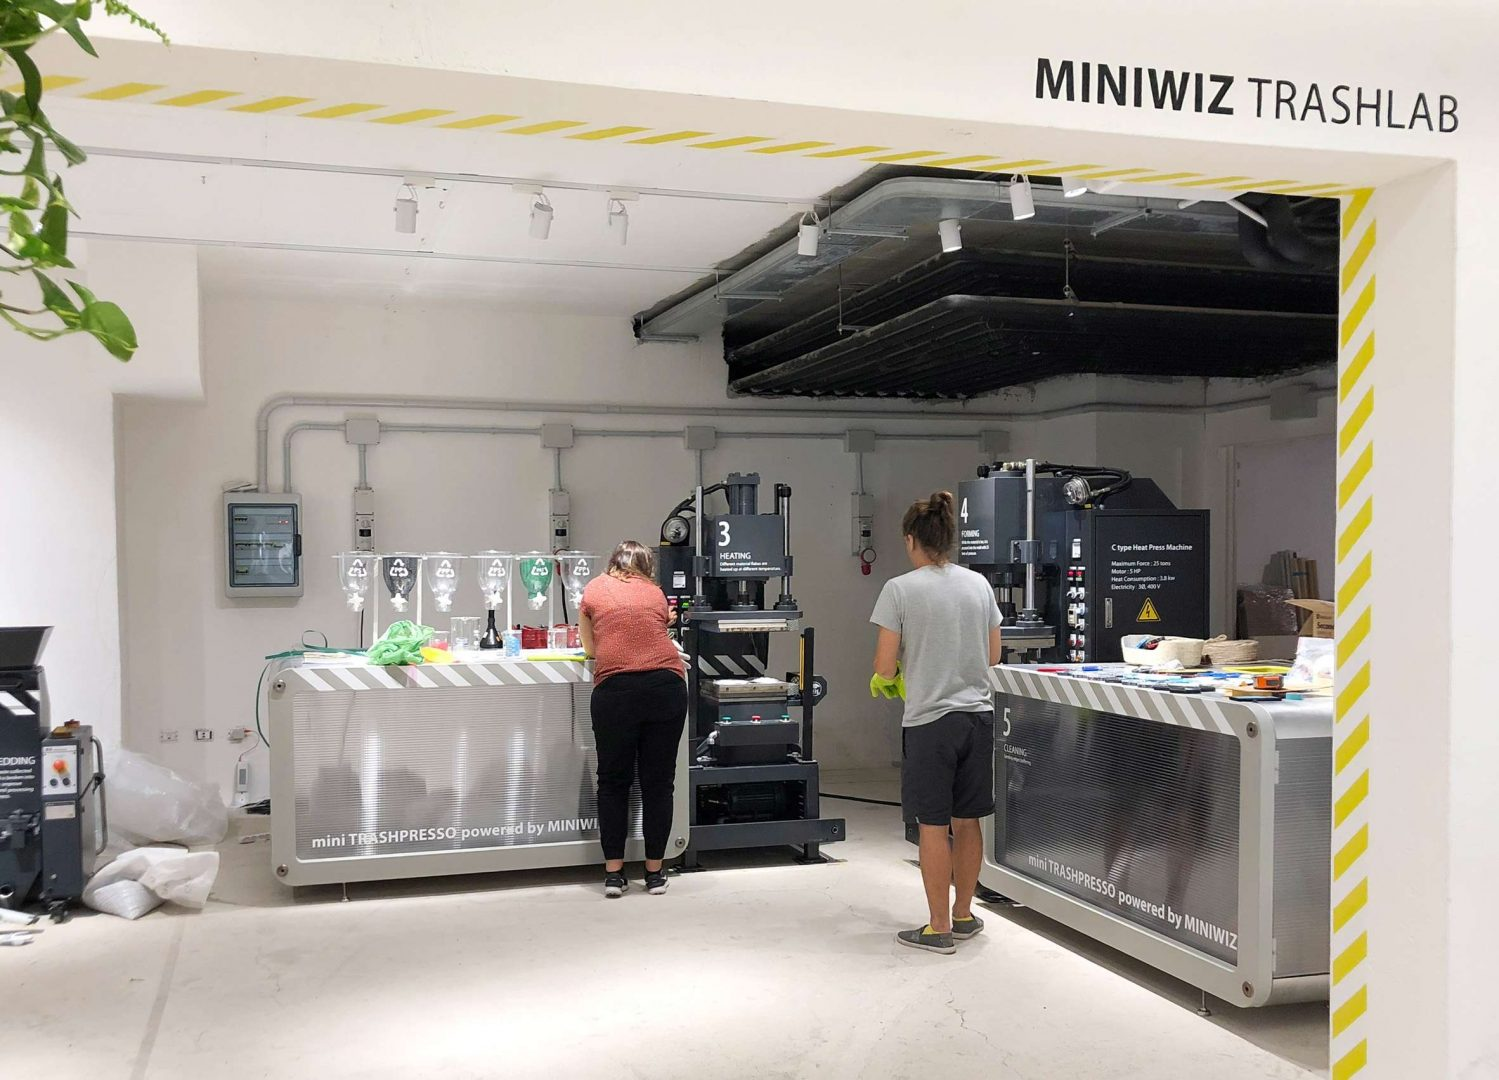 Exchange Miniwiz